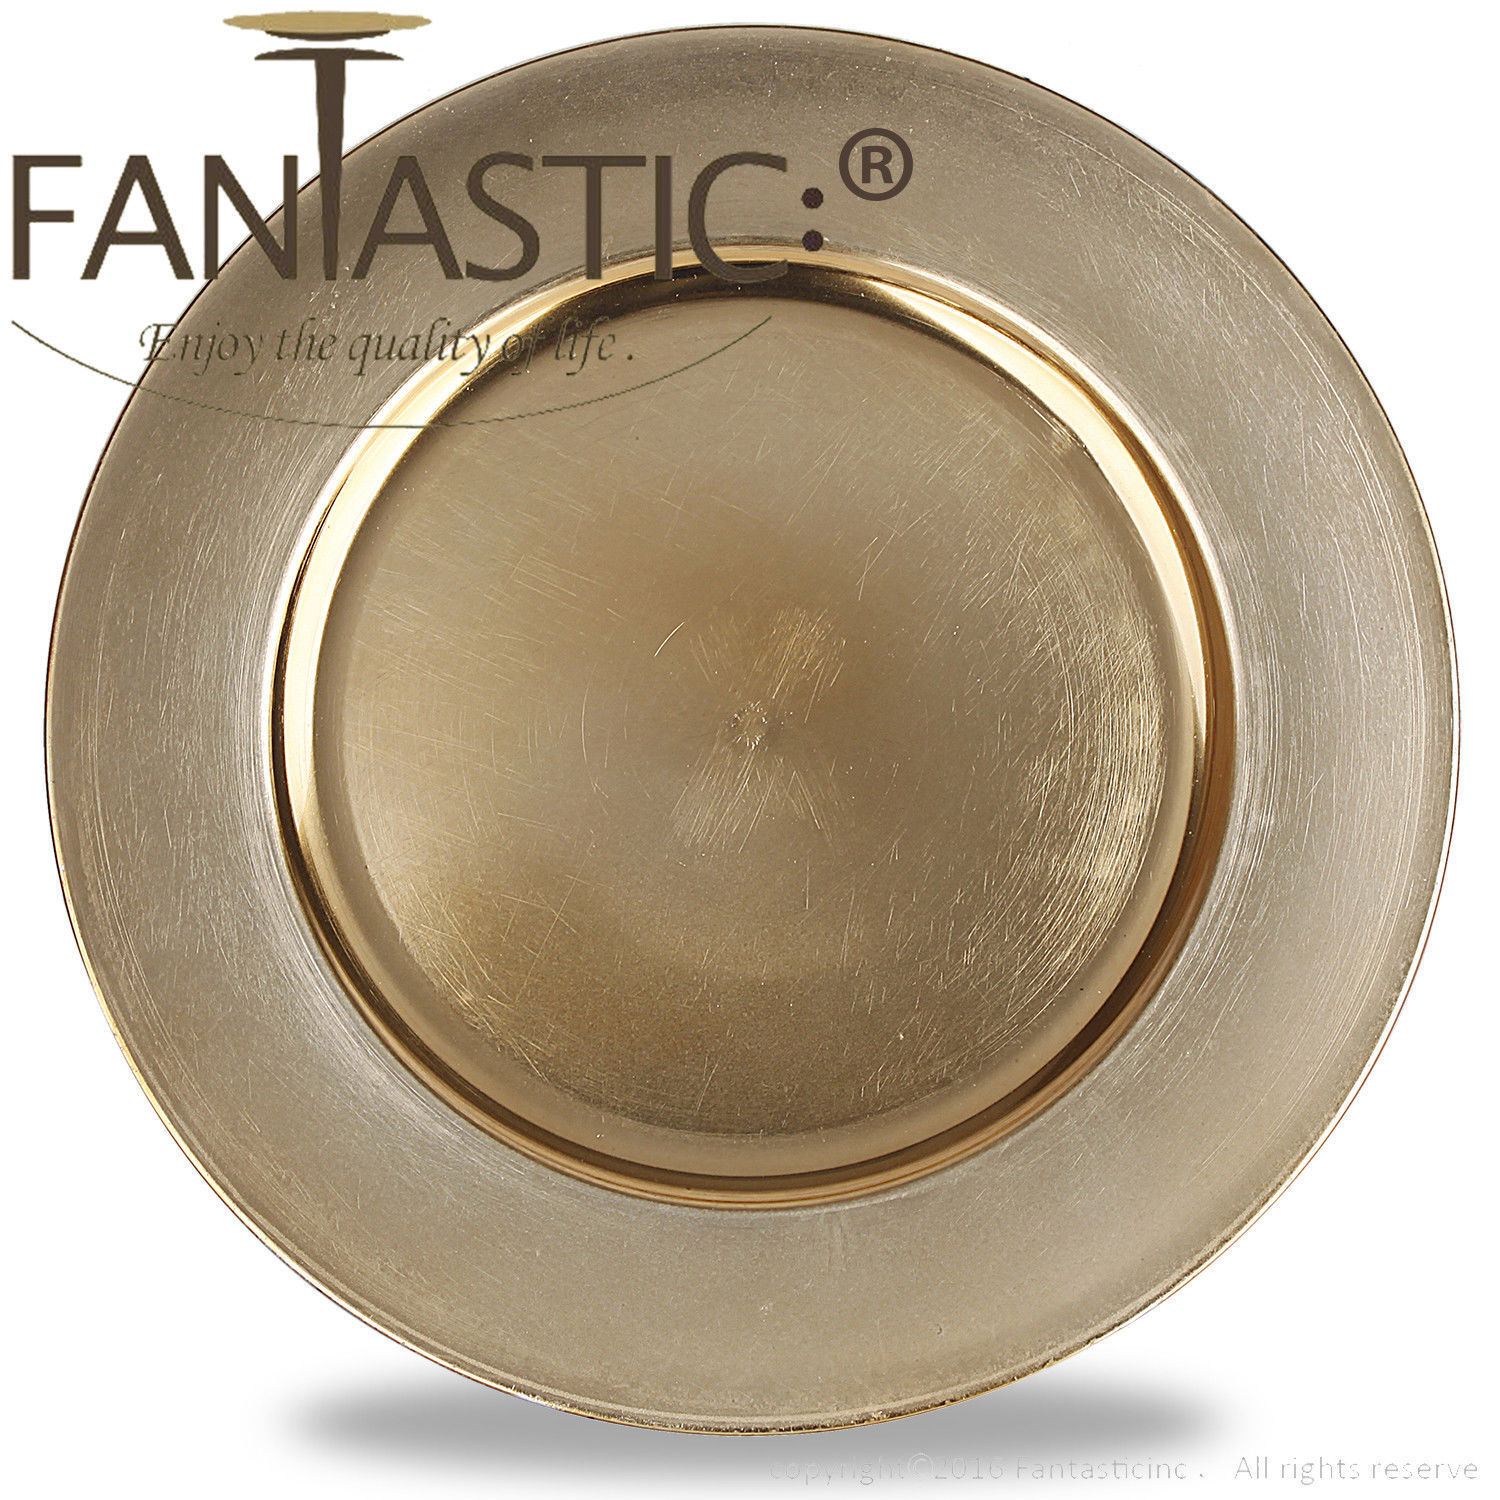 Fantastic )™ Round 13Inch Charger Plate With Metallic Finish ( Plain Pattern )